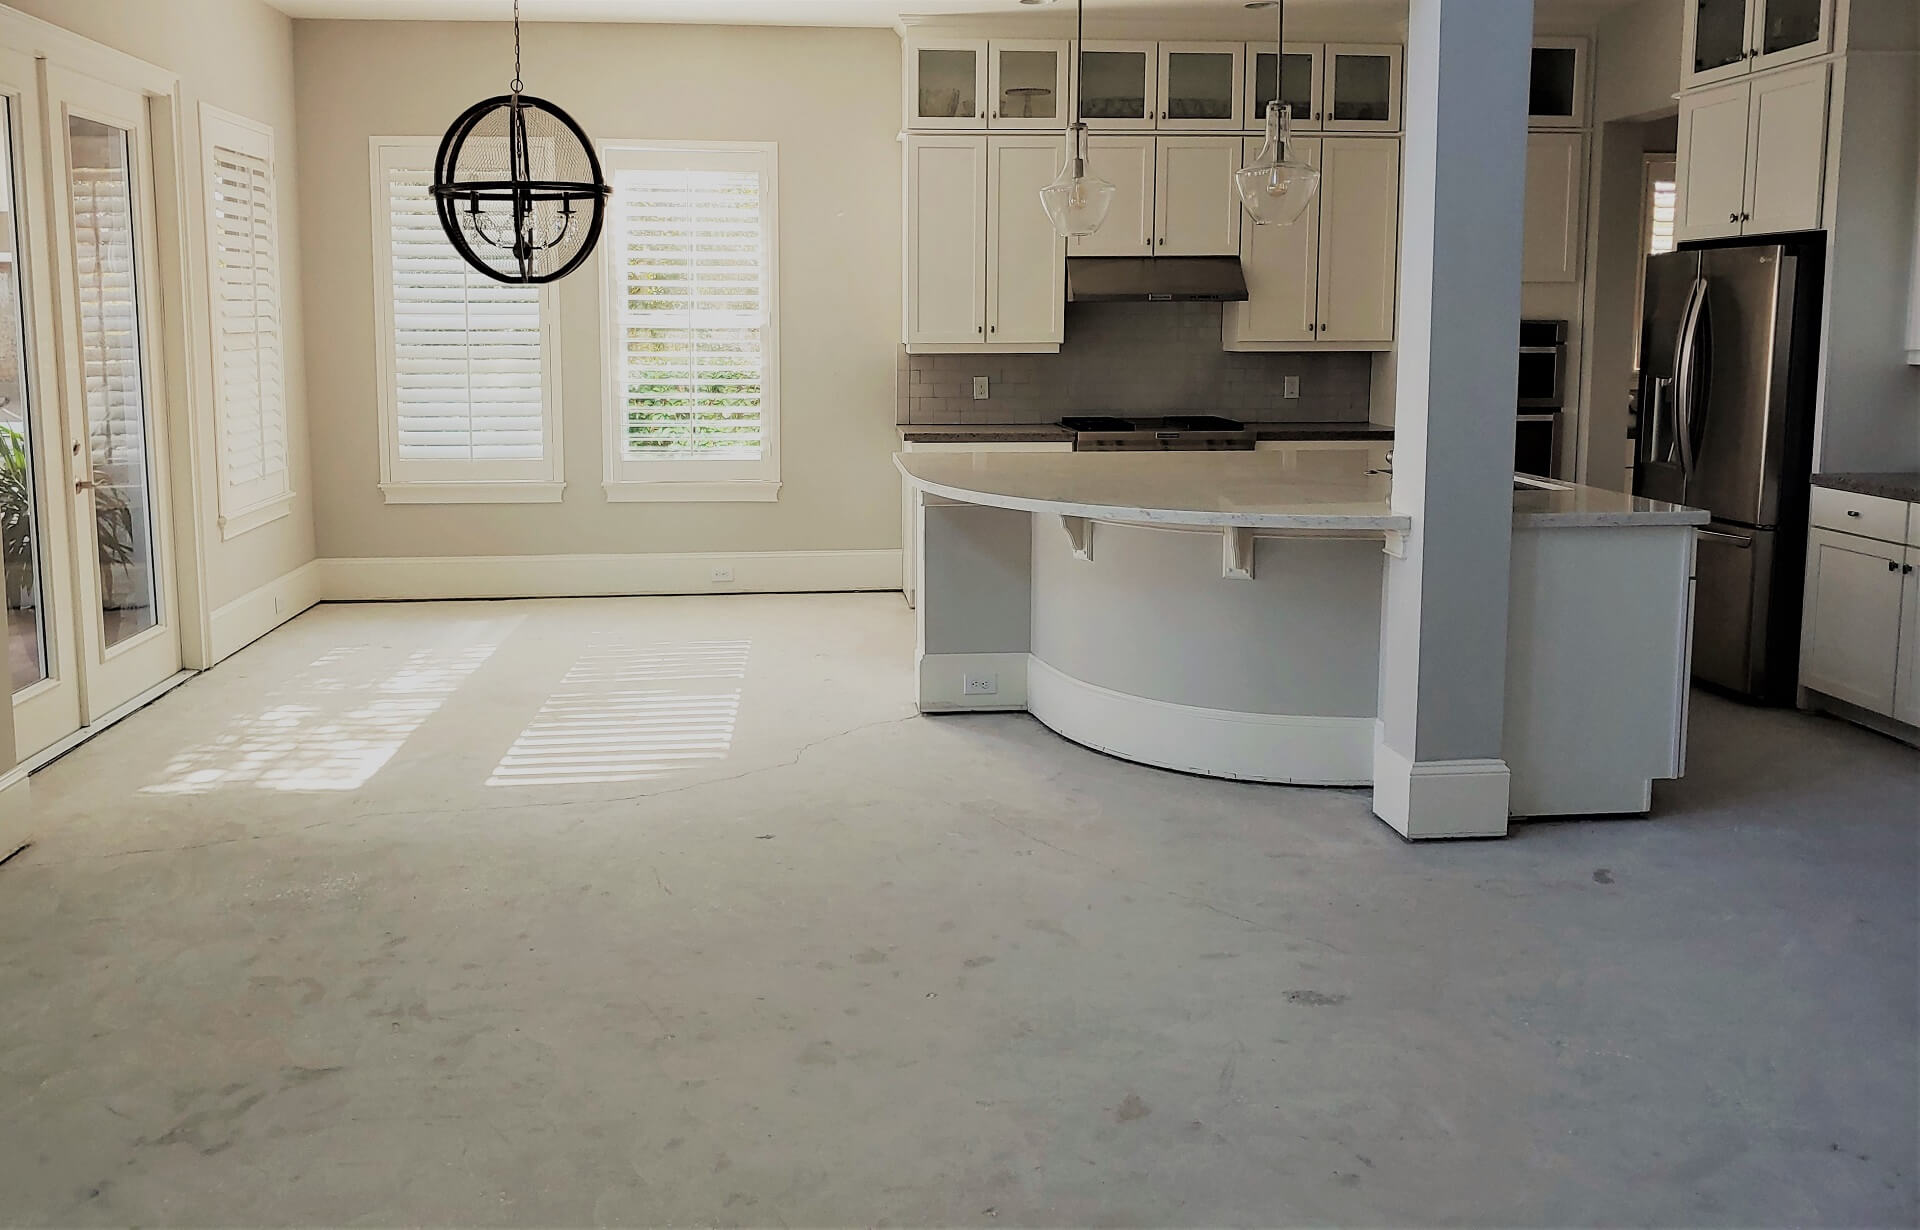 Is Dust Free Tile Removal Even Possible?